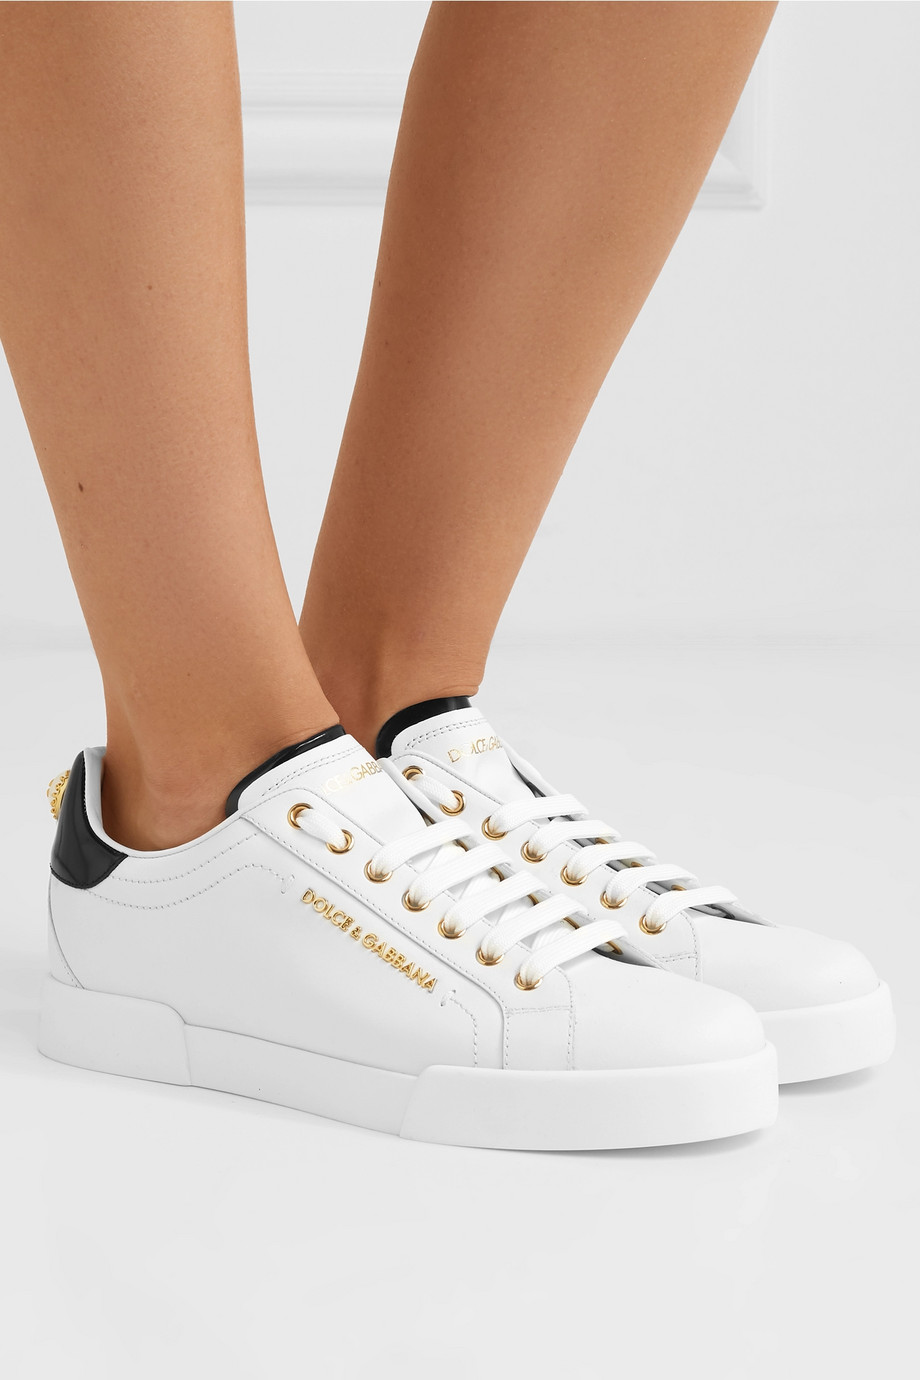 Dolce & Gabbana Logo-embellished leather sneakers